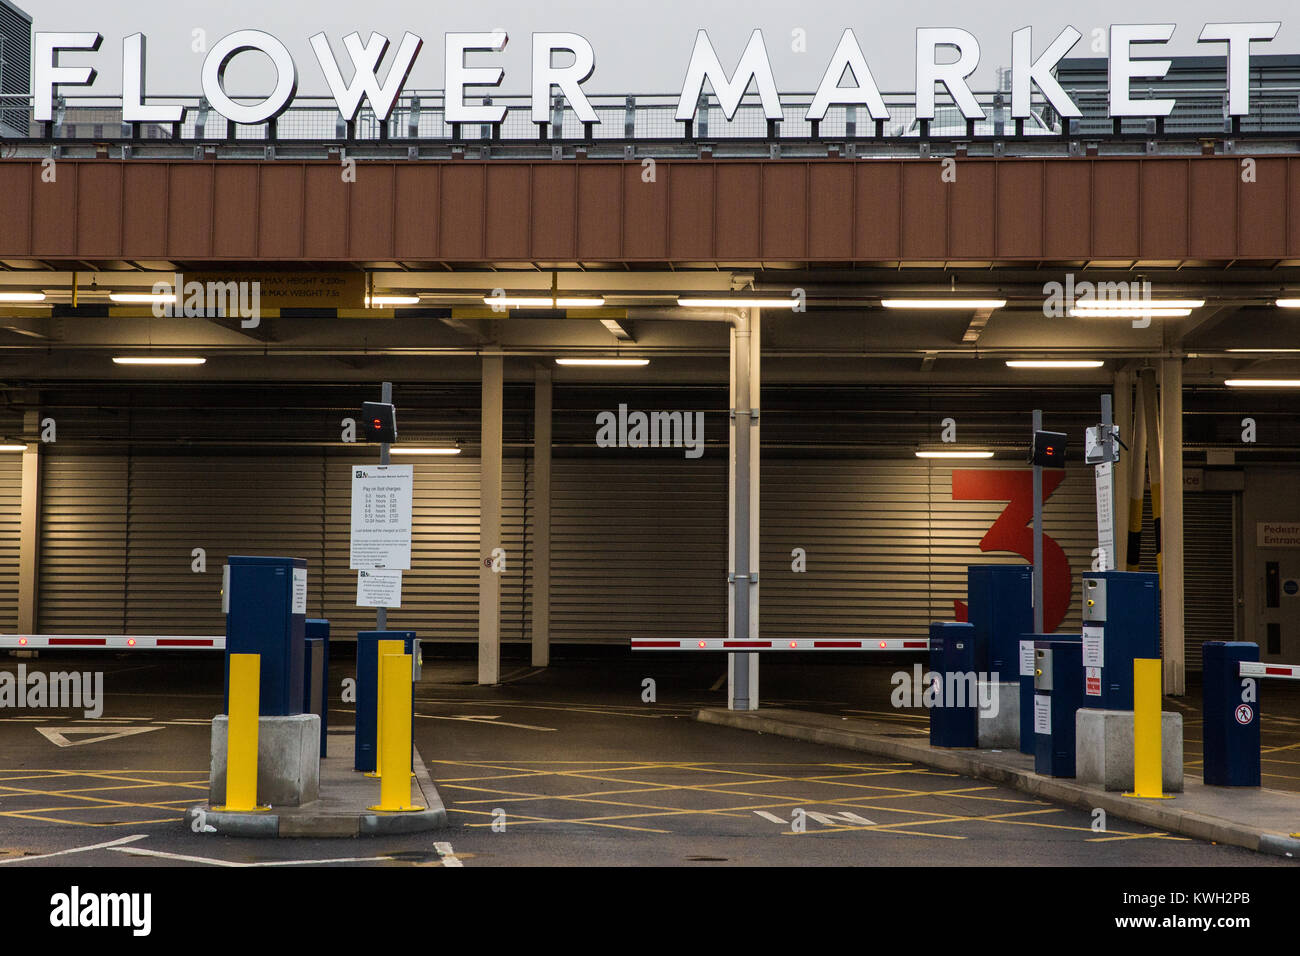 London, UK. 20th December, 2017. An entrance to the flower market at New Covent Garden Market at Nine Elms. - Stock Image